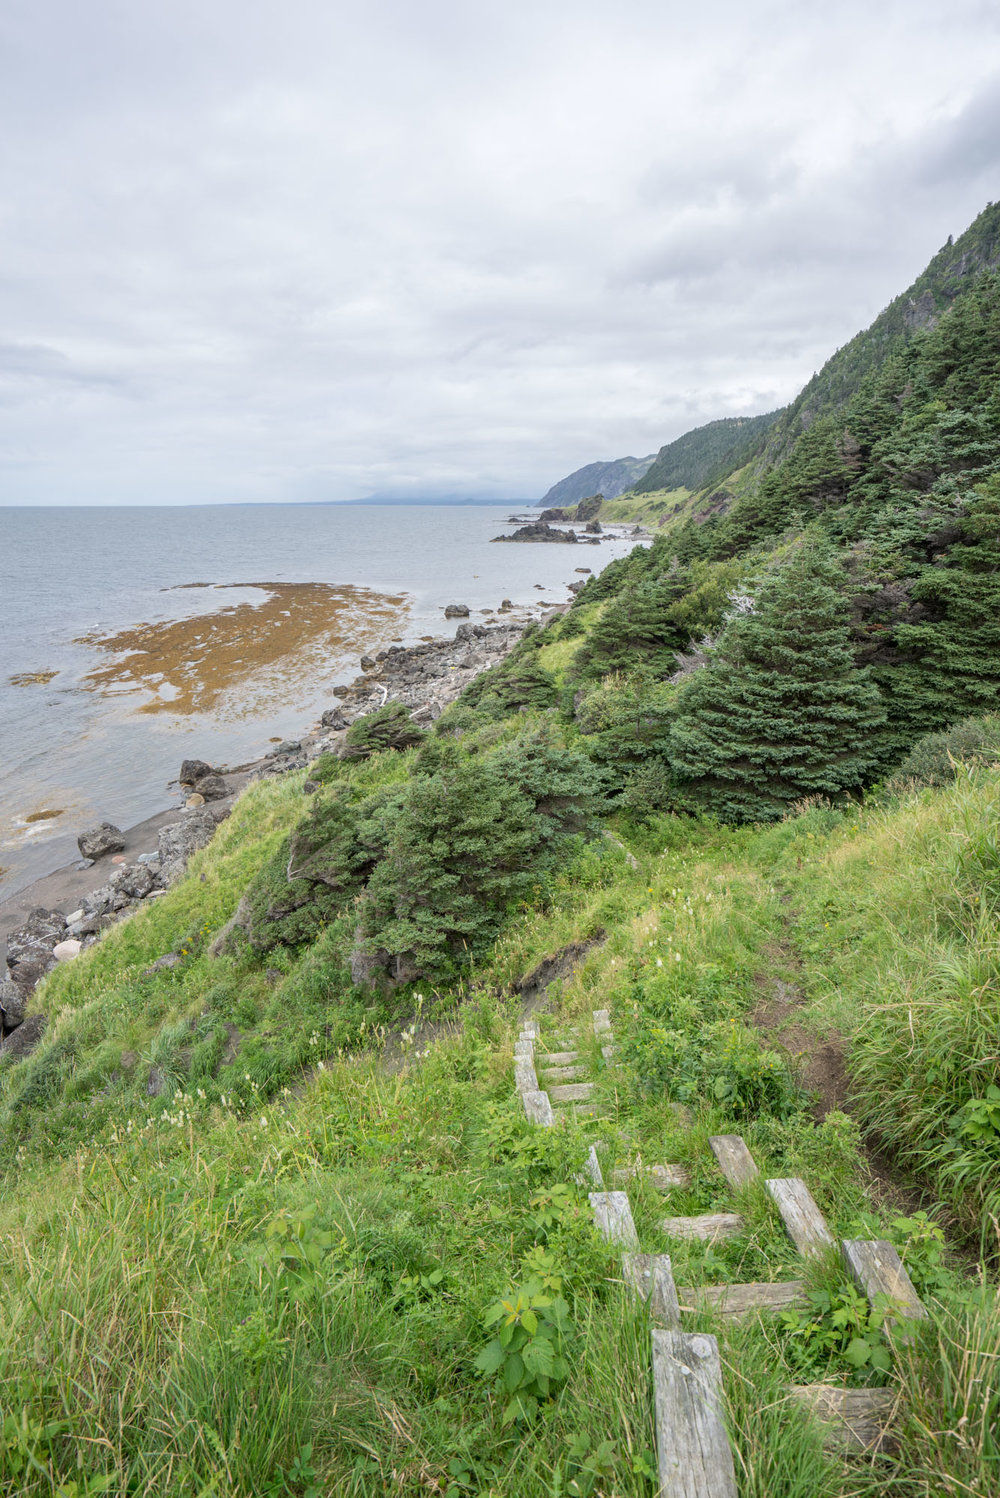 Where the Green Gardens Trail ends due to cliff-line erosion.